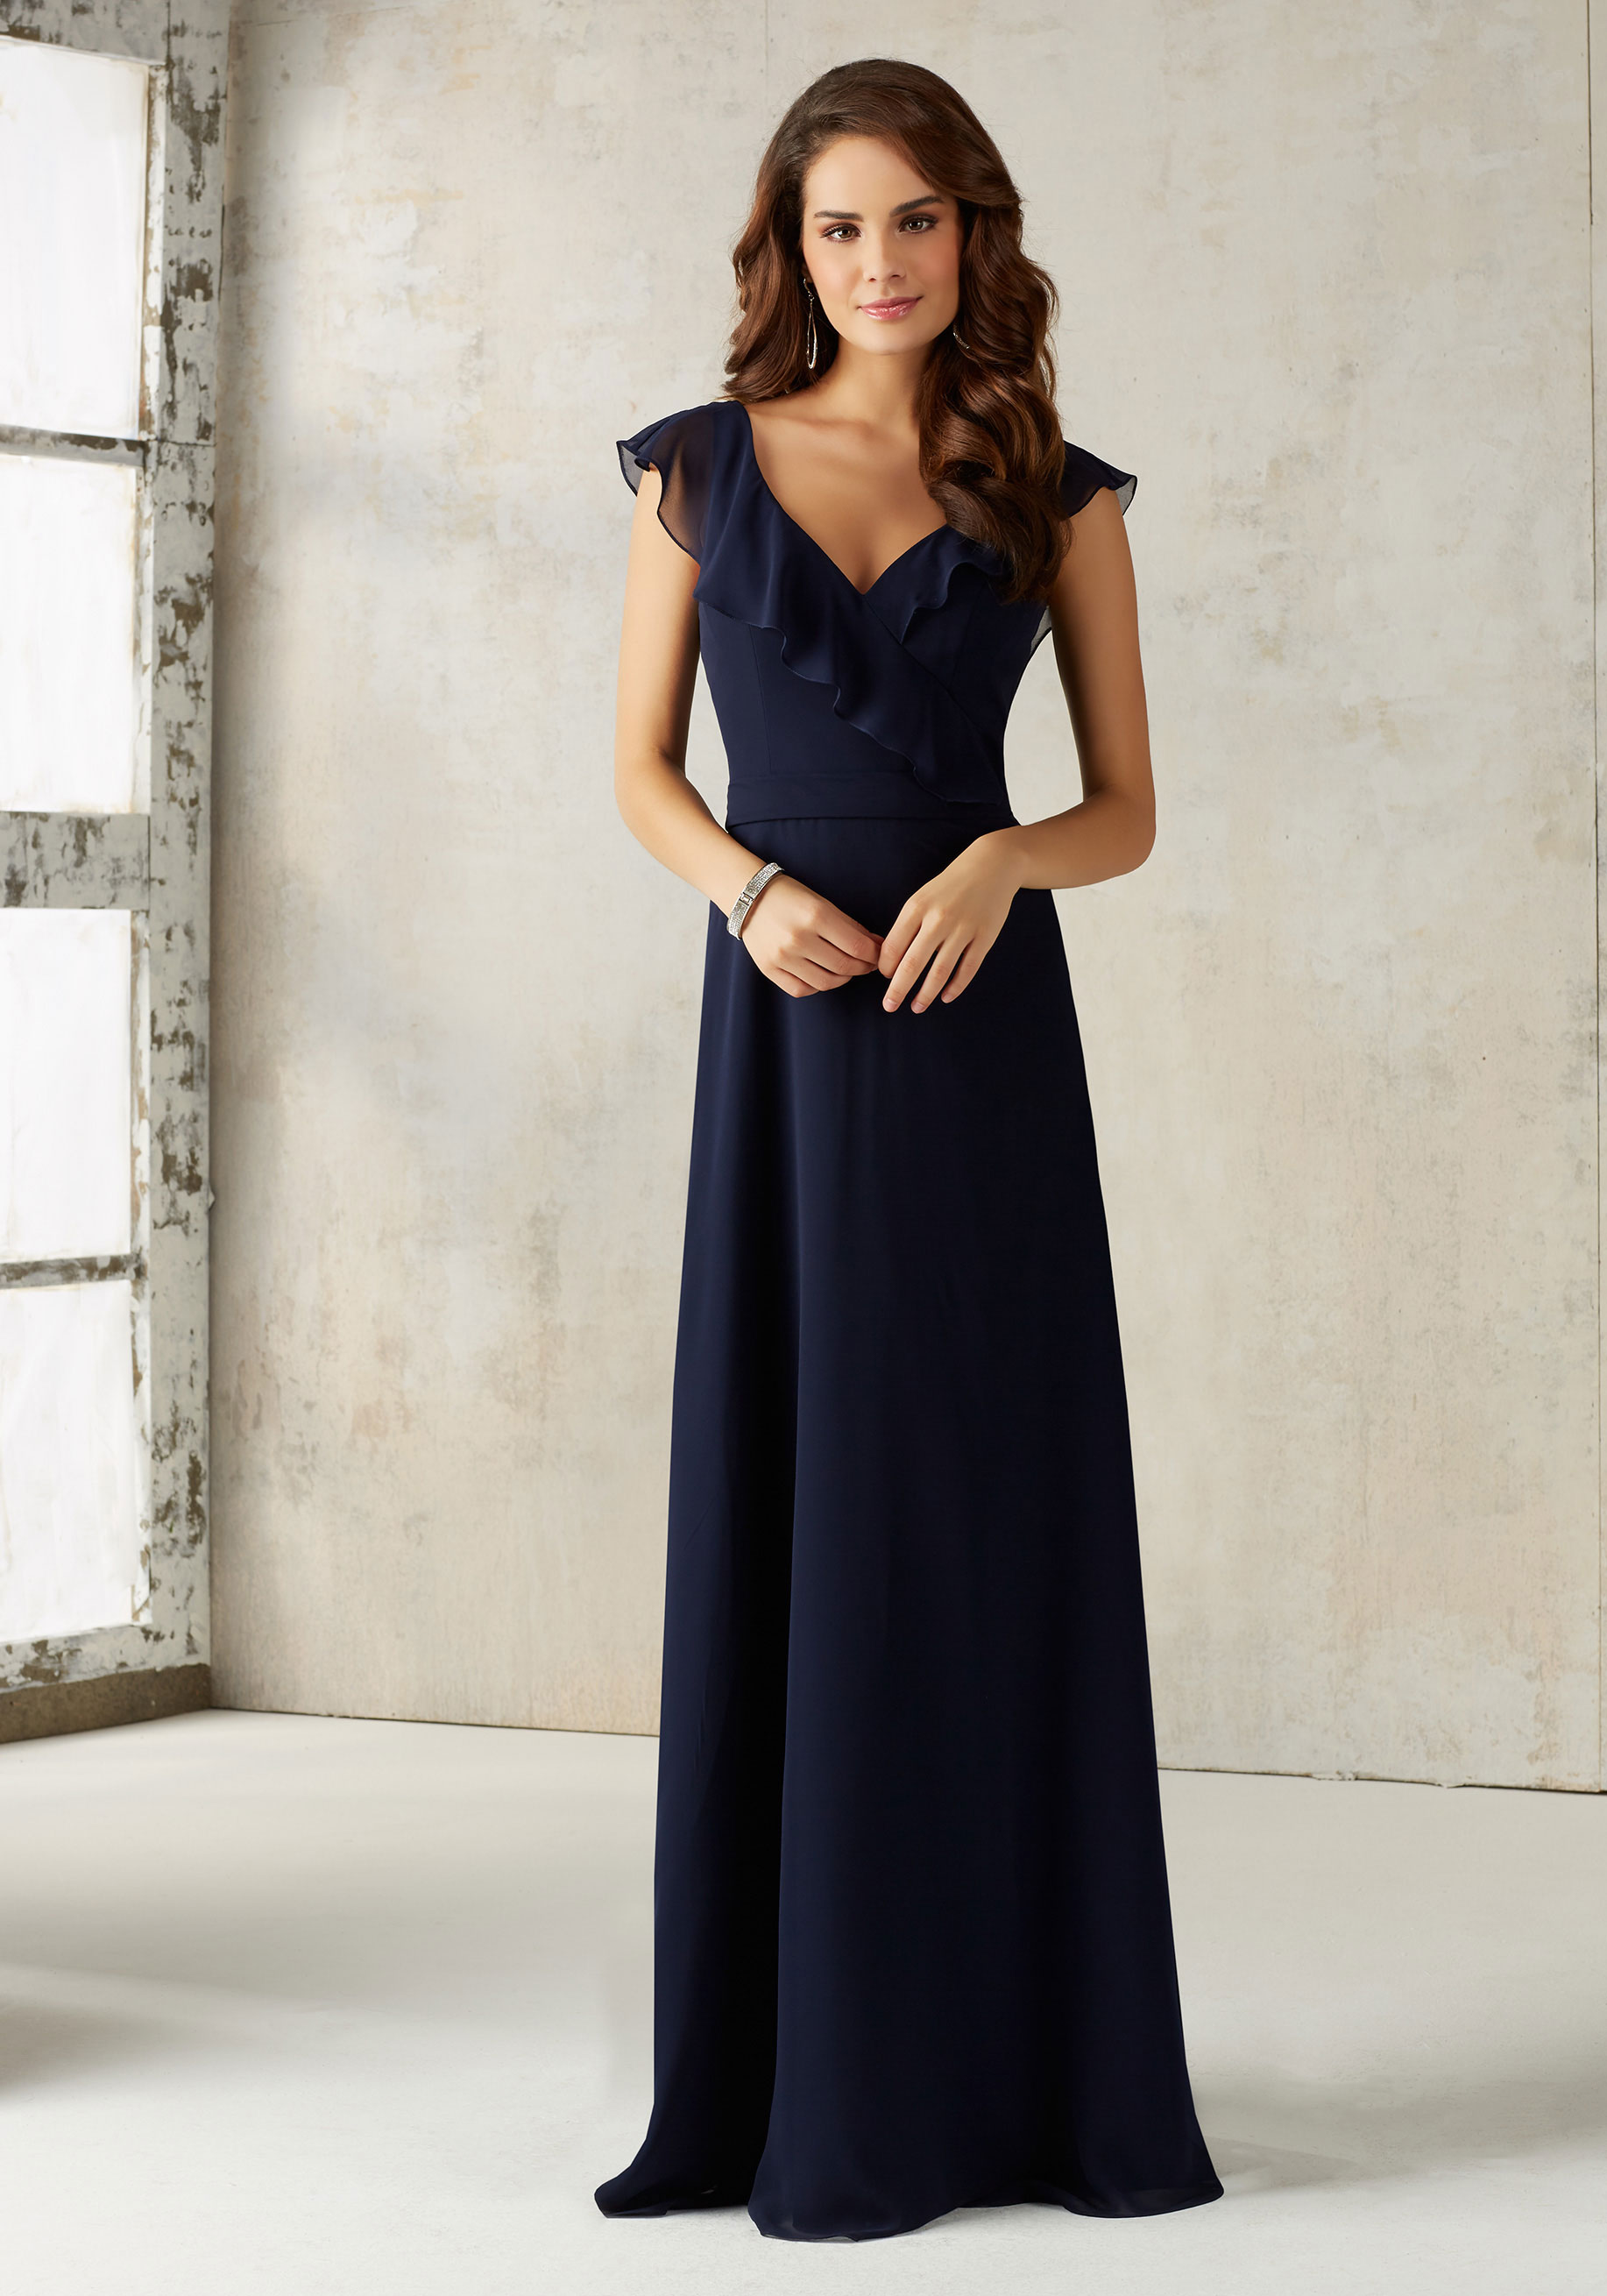 b9e47c43b7f 21527. PRICE €250. This Stunning Chiffon Bridesmaids Dress Features a  Romantic Ruffled V ...